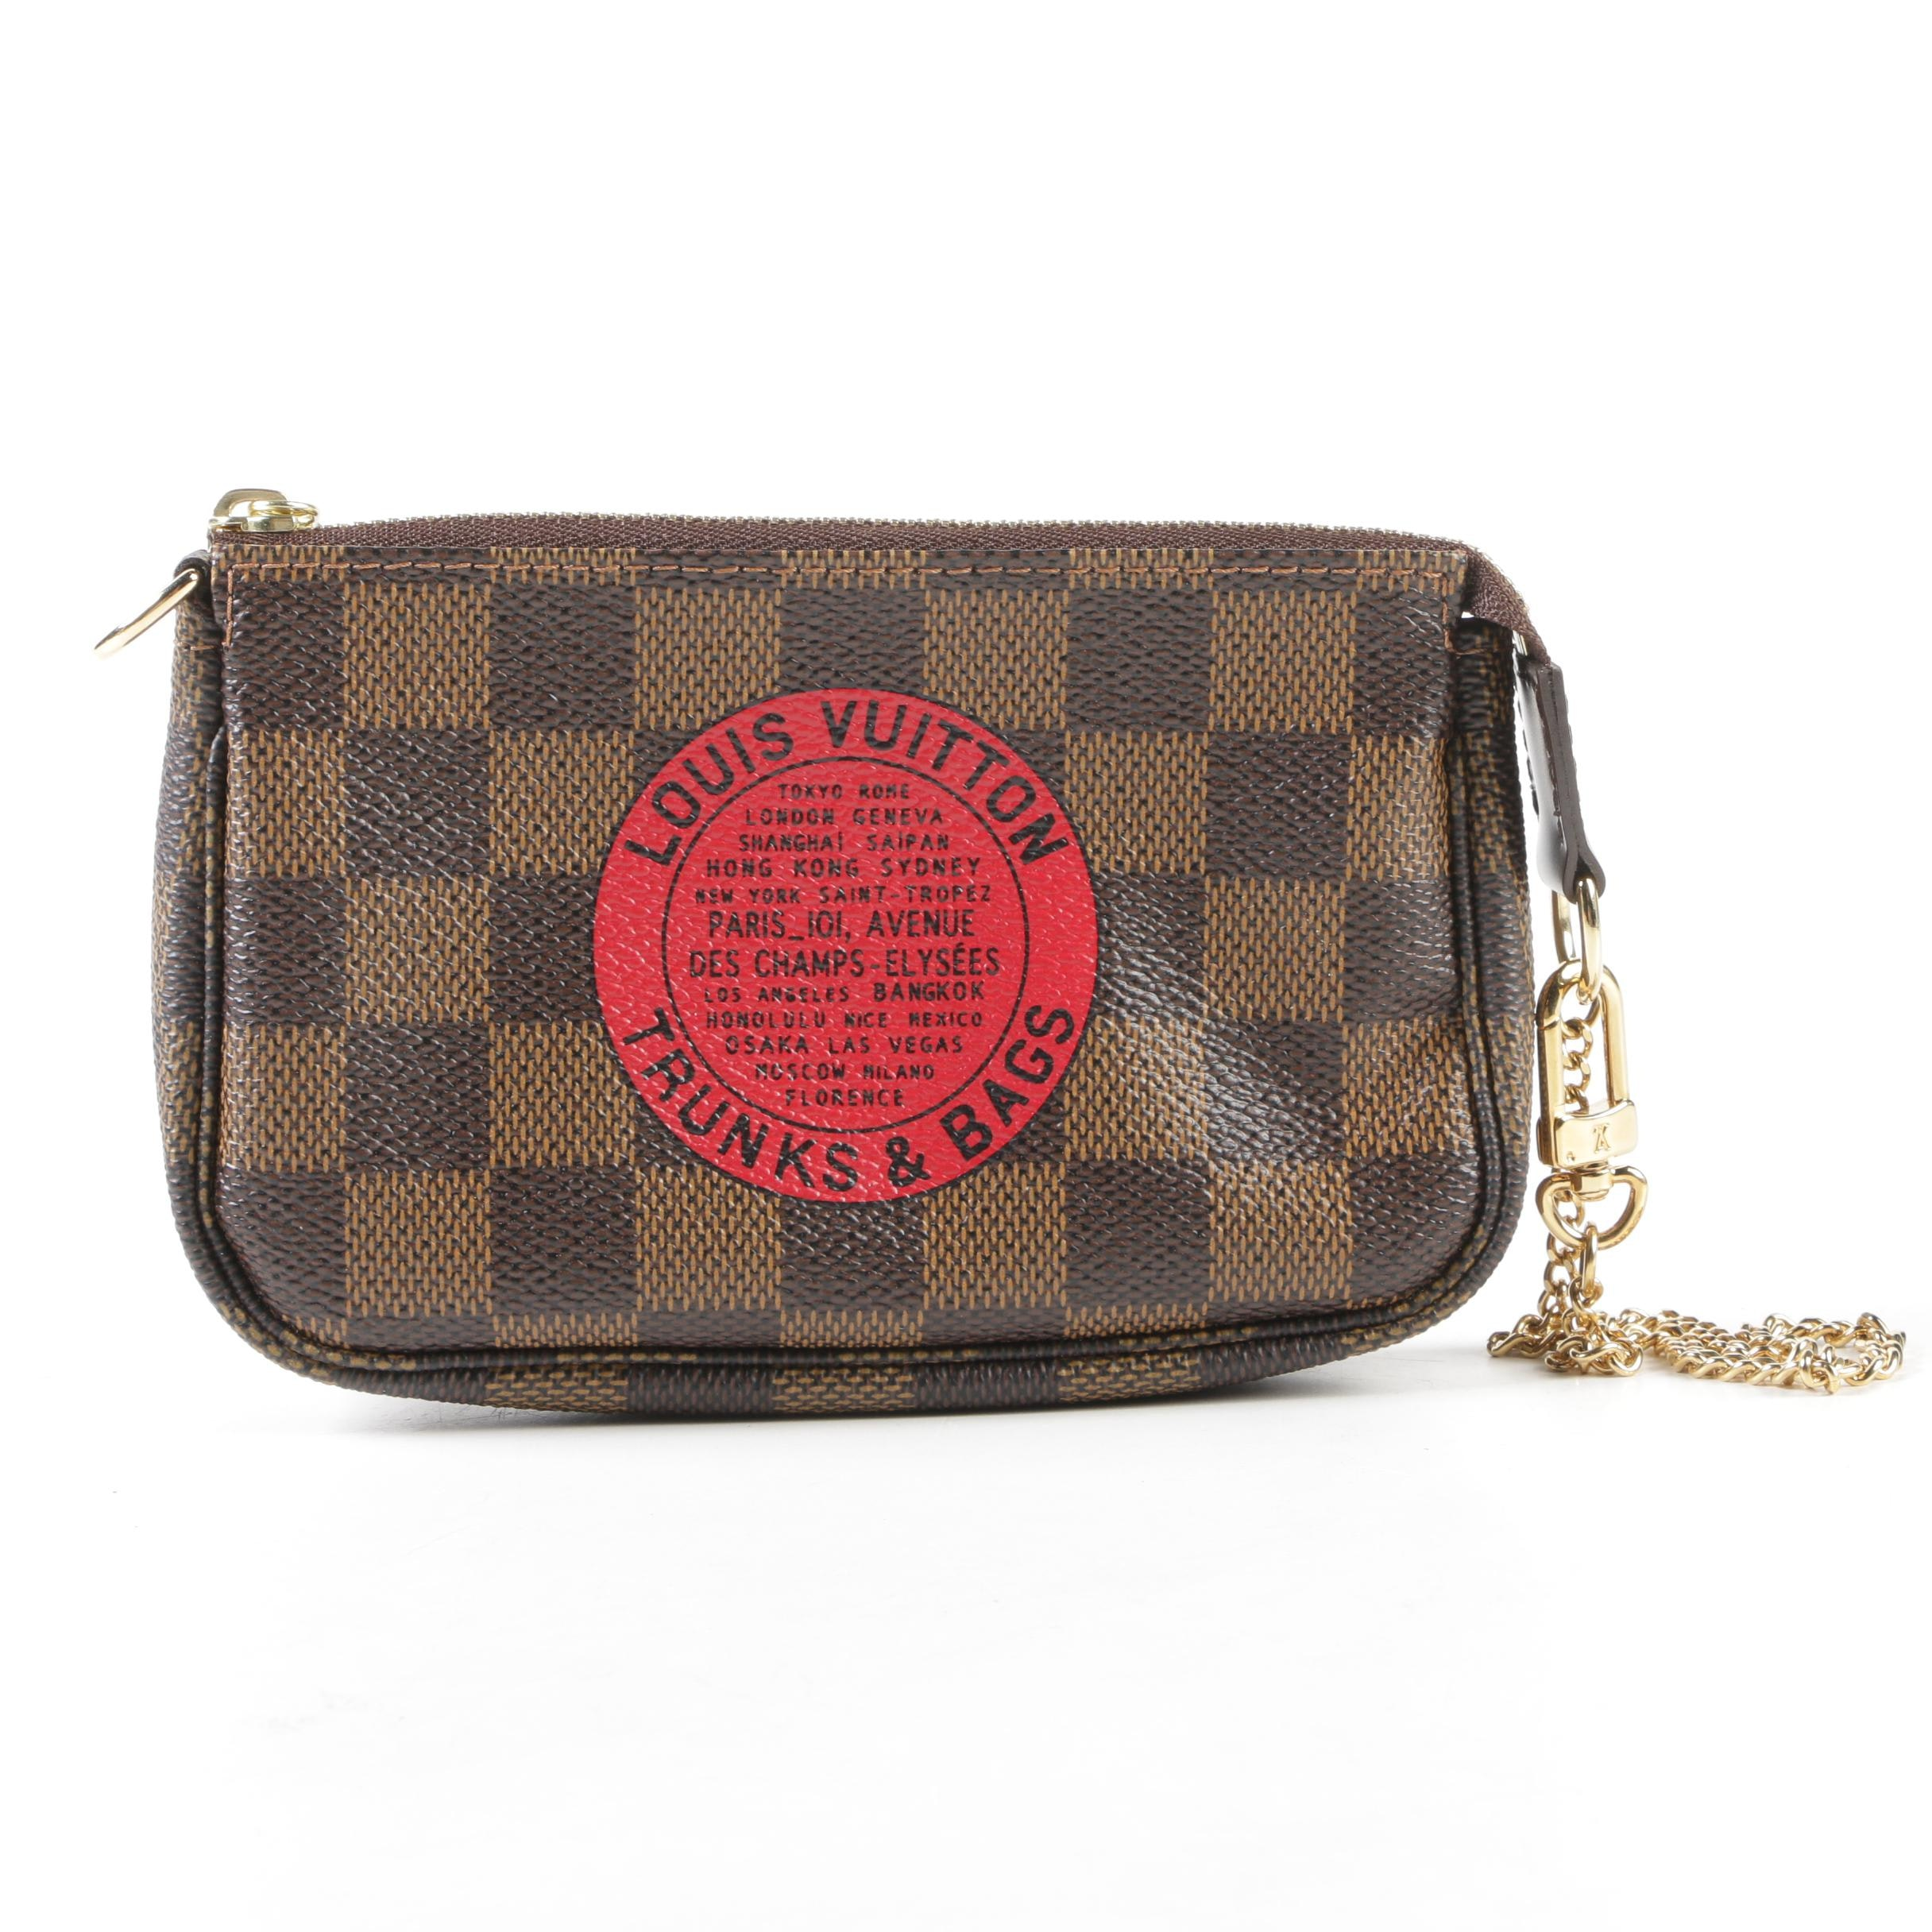 Louis Vuitton Limited Edition Trunks & Bags Damier Ebene Mini Pochette